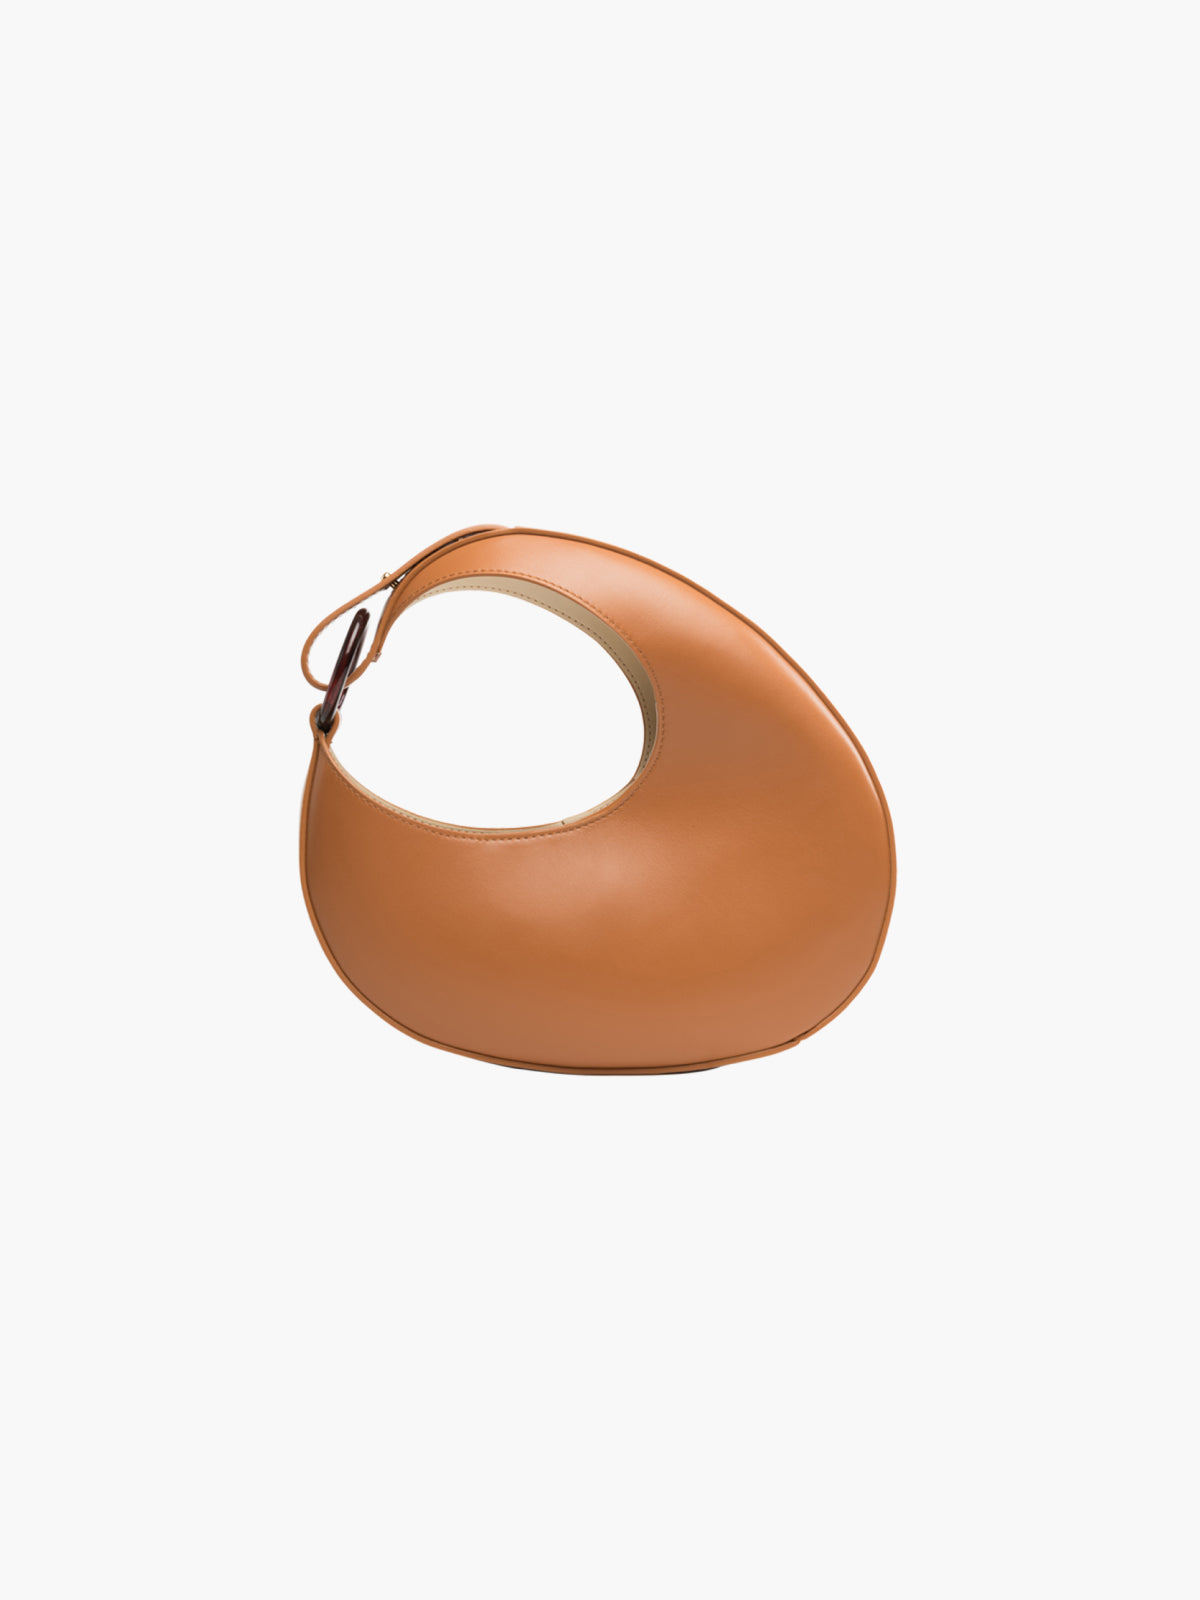 Ostra Mini Handbag | Tan